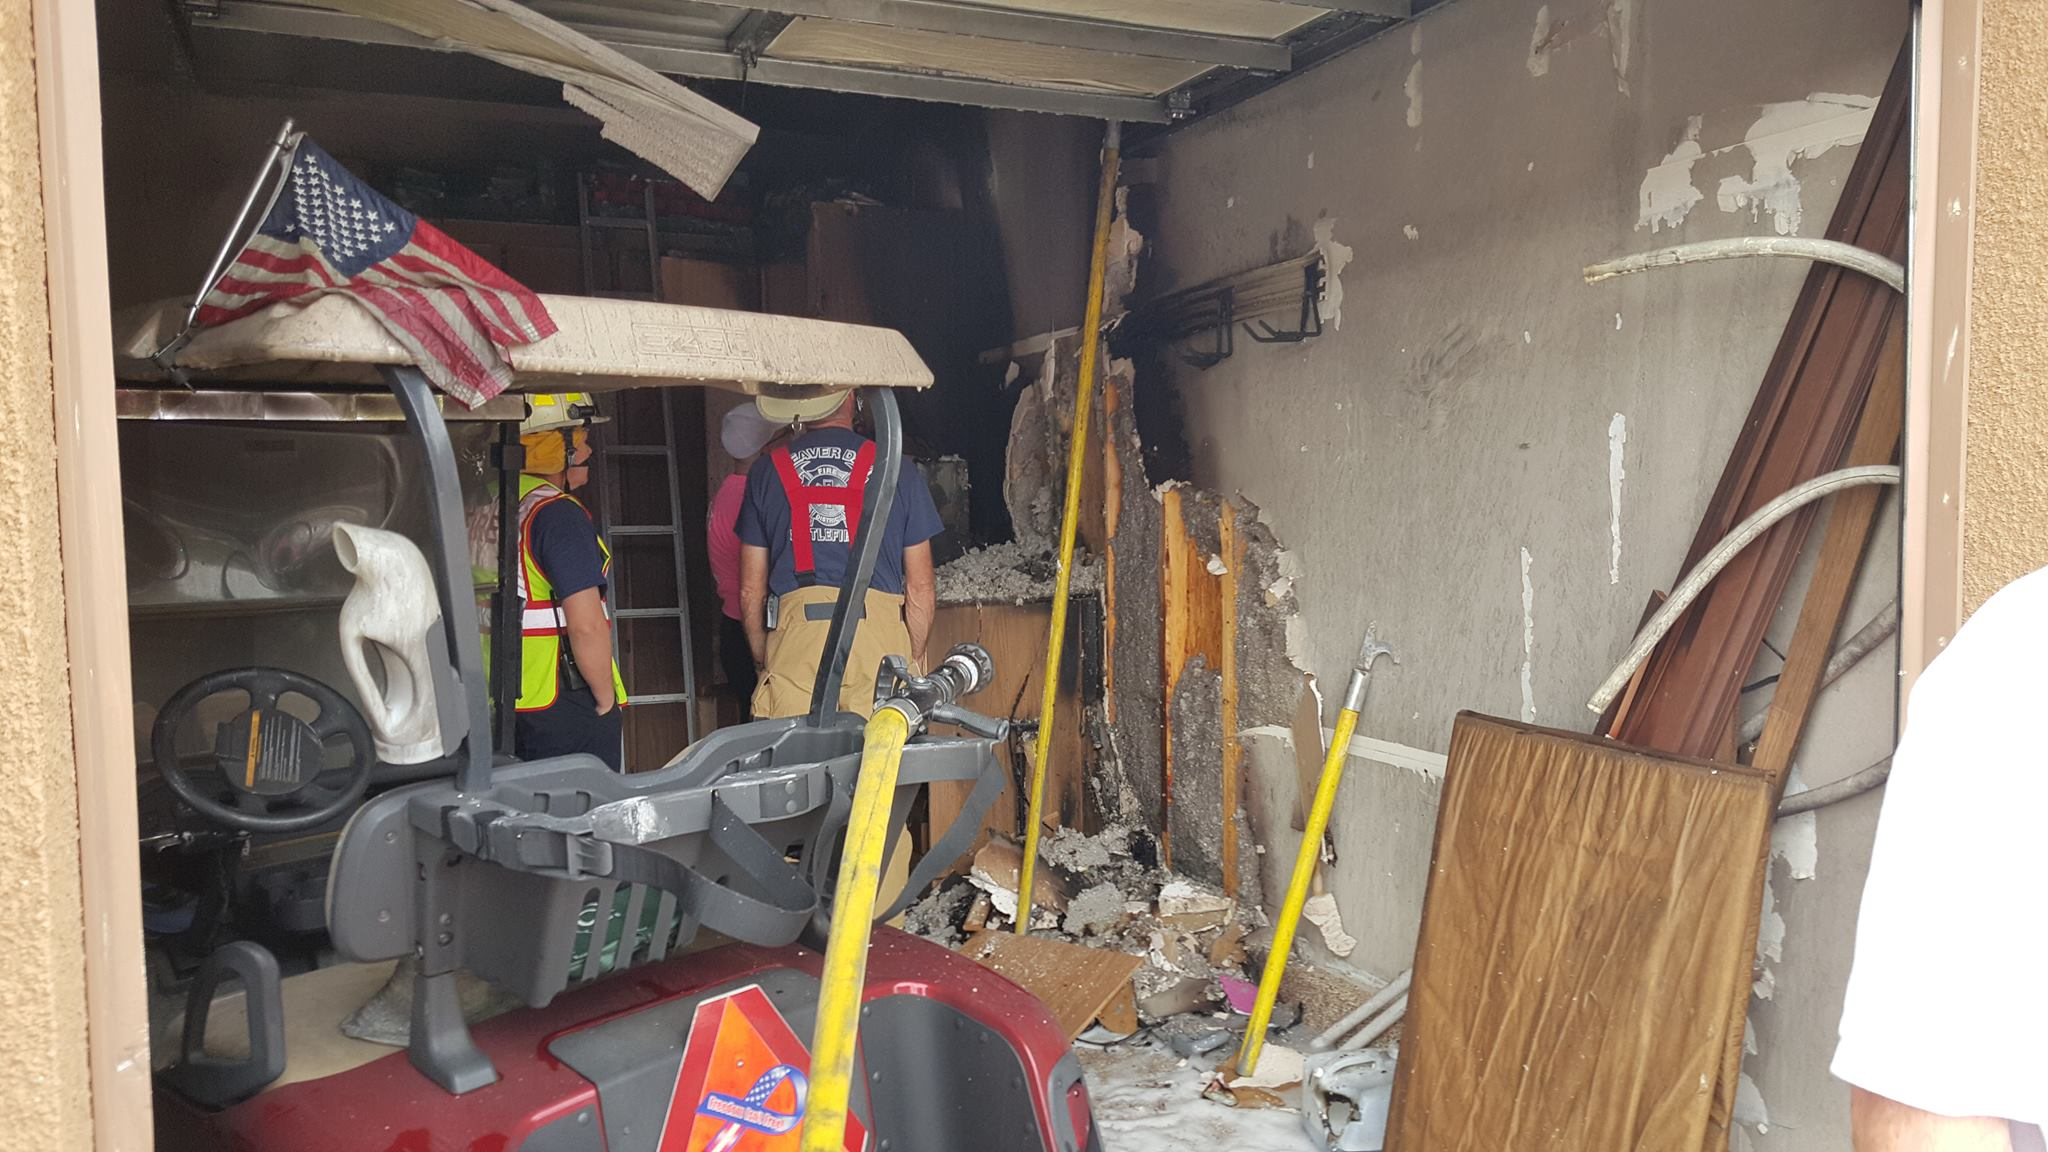 Fire Department responds to garage fire